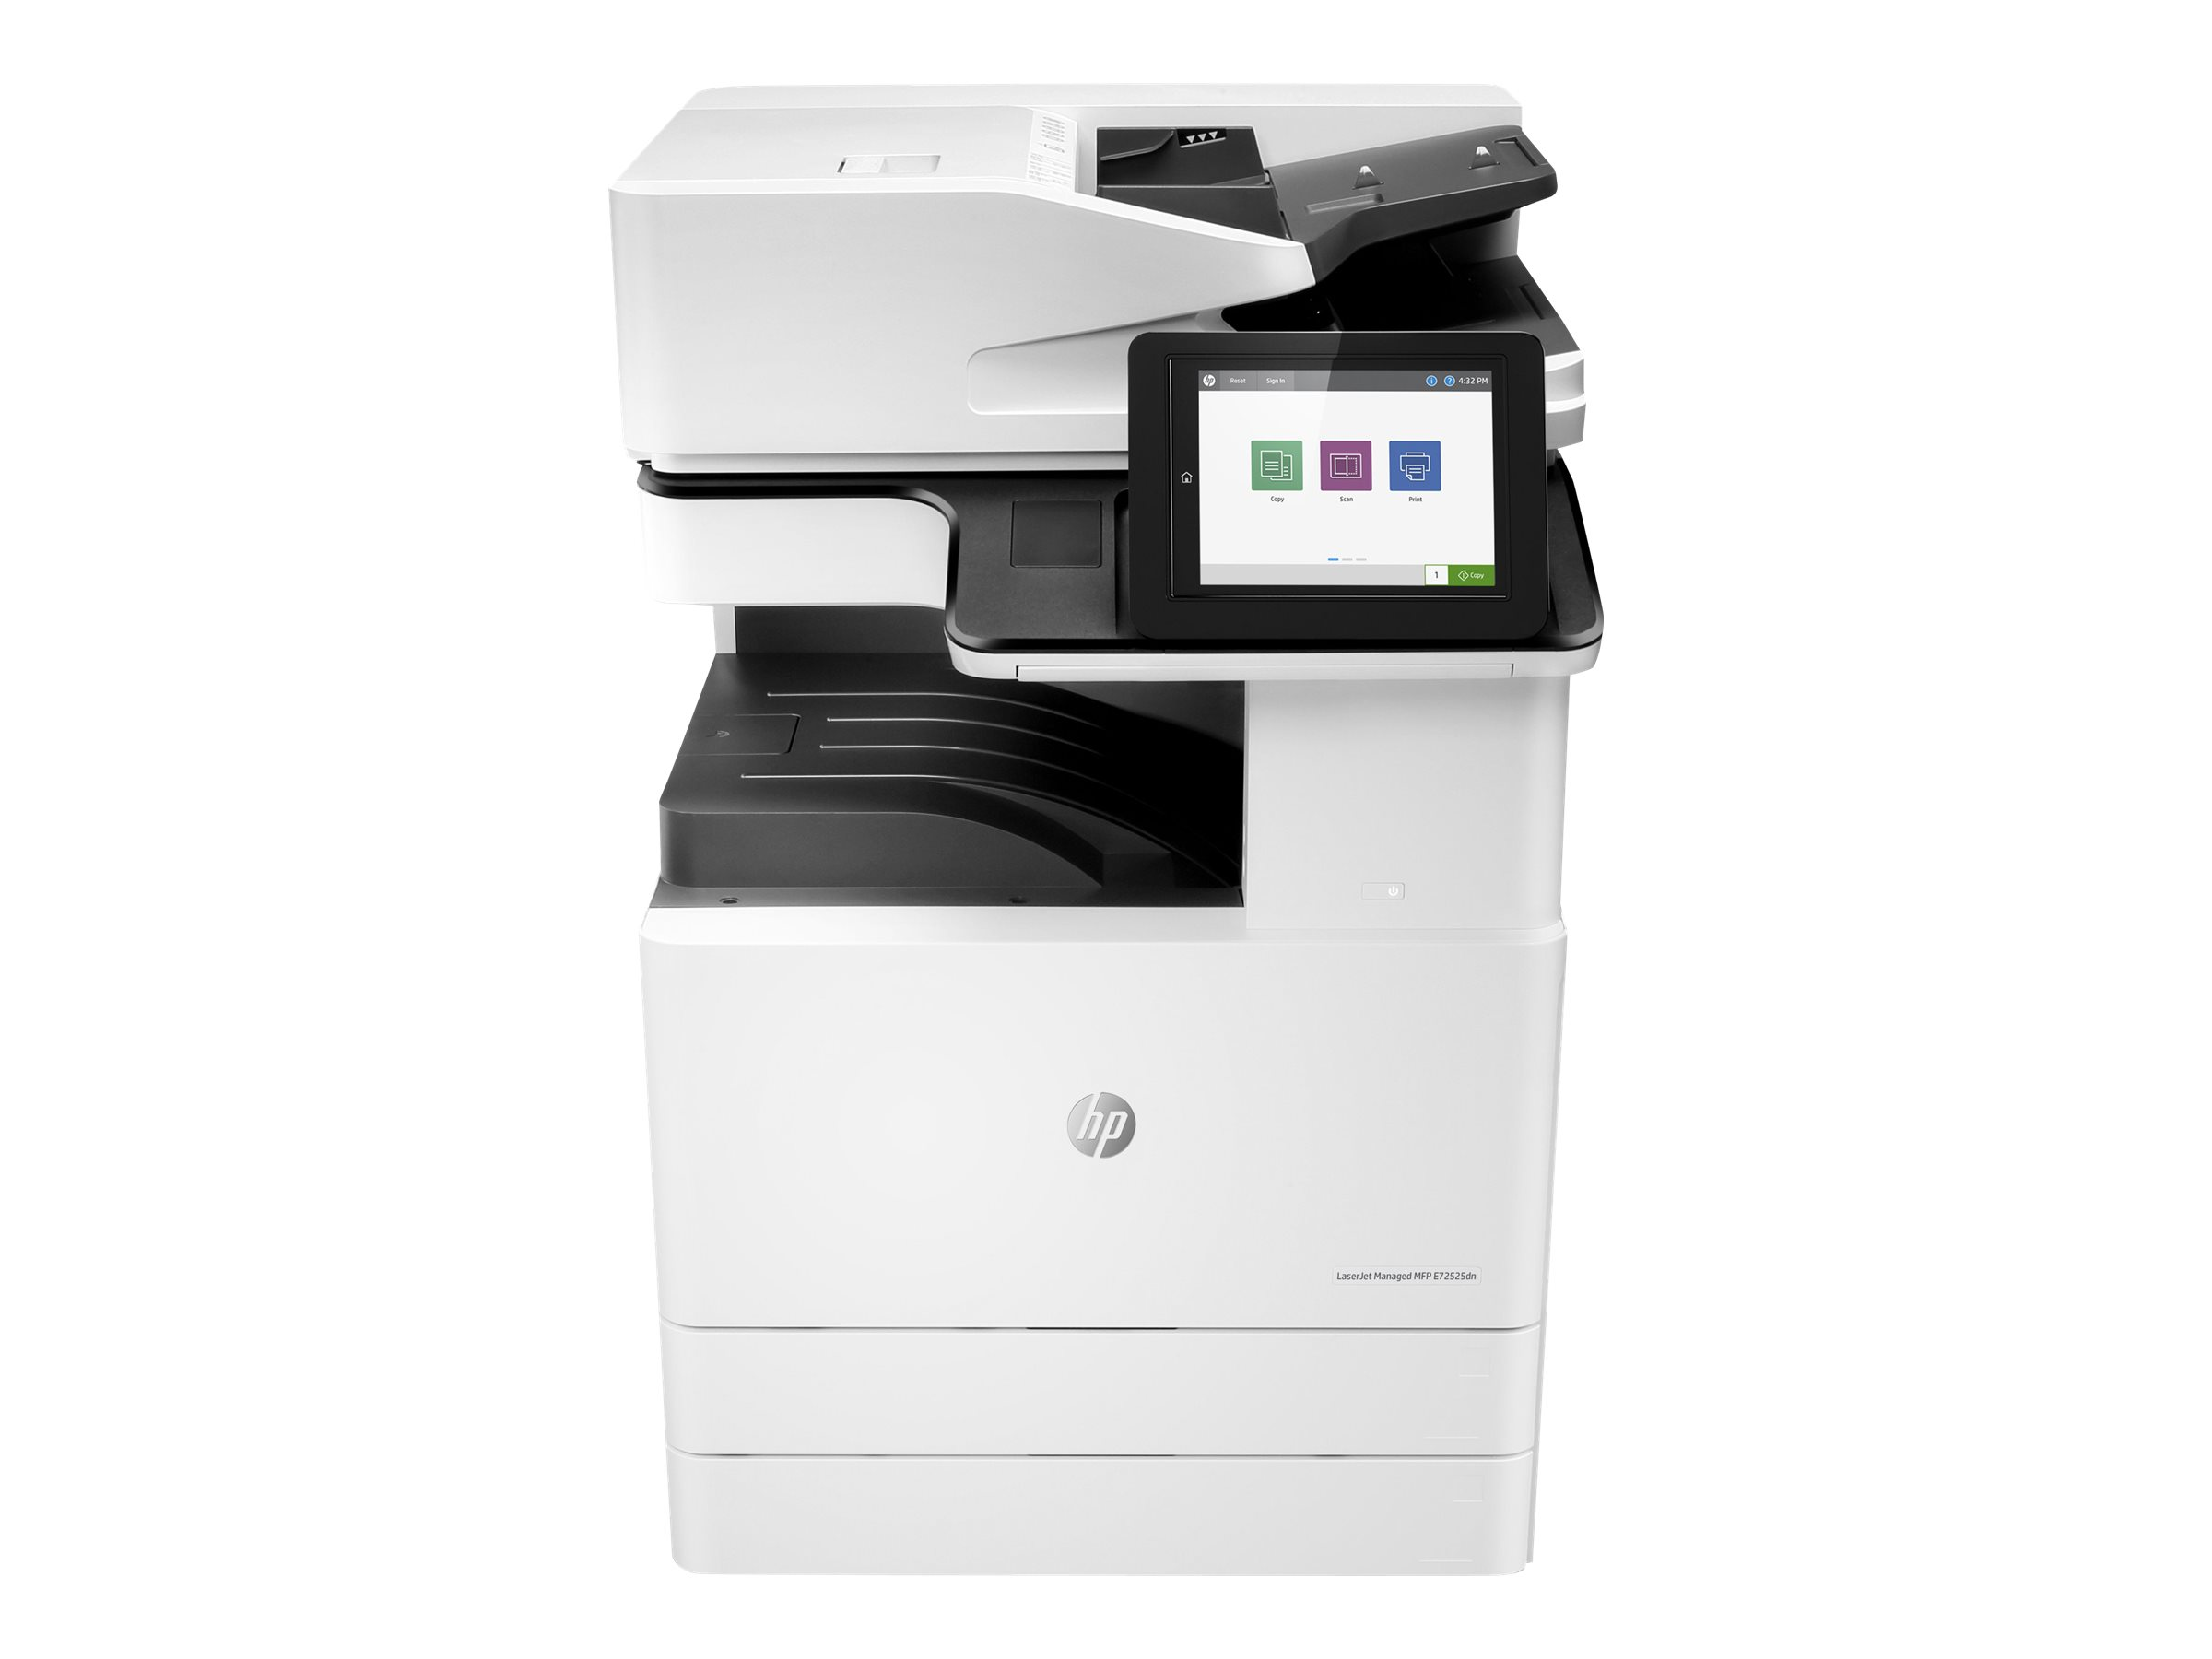 Copieur Color LaserJet Managed MFP HP E77830dn - vitesse 30ppm vue avant